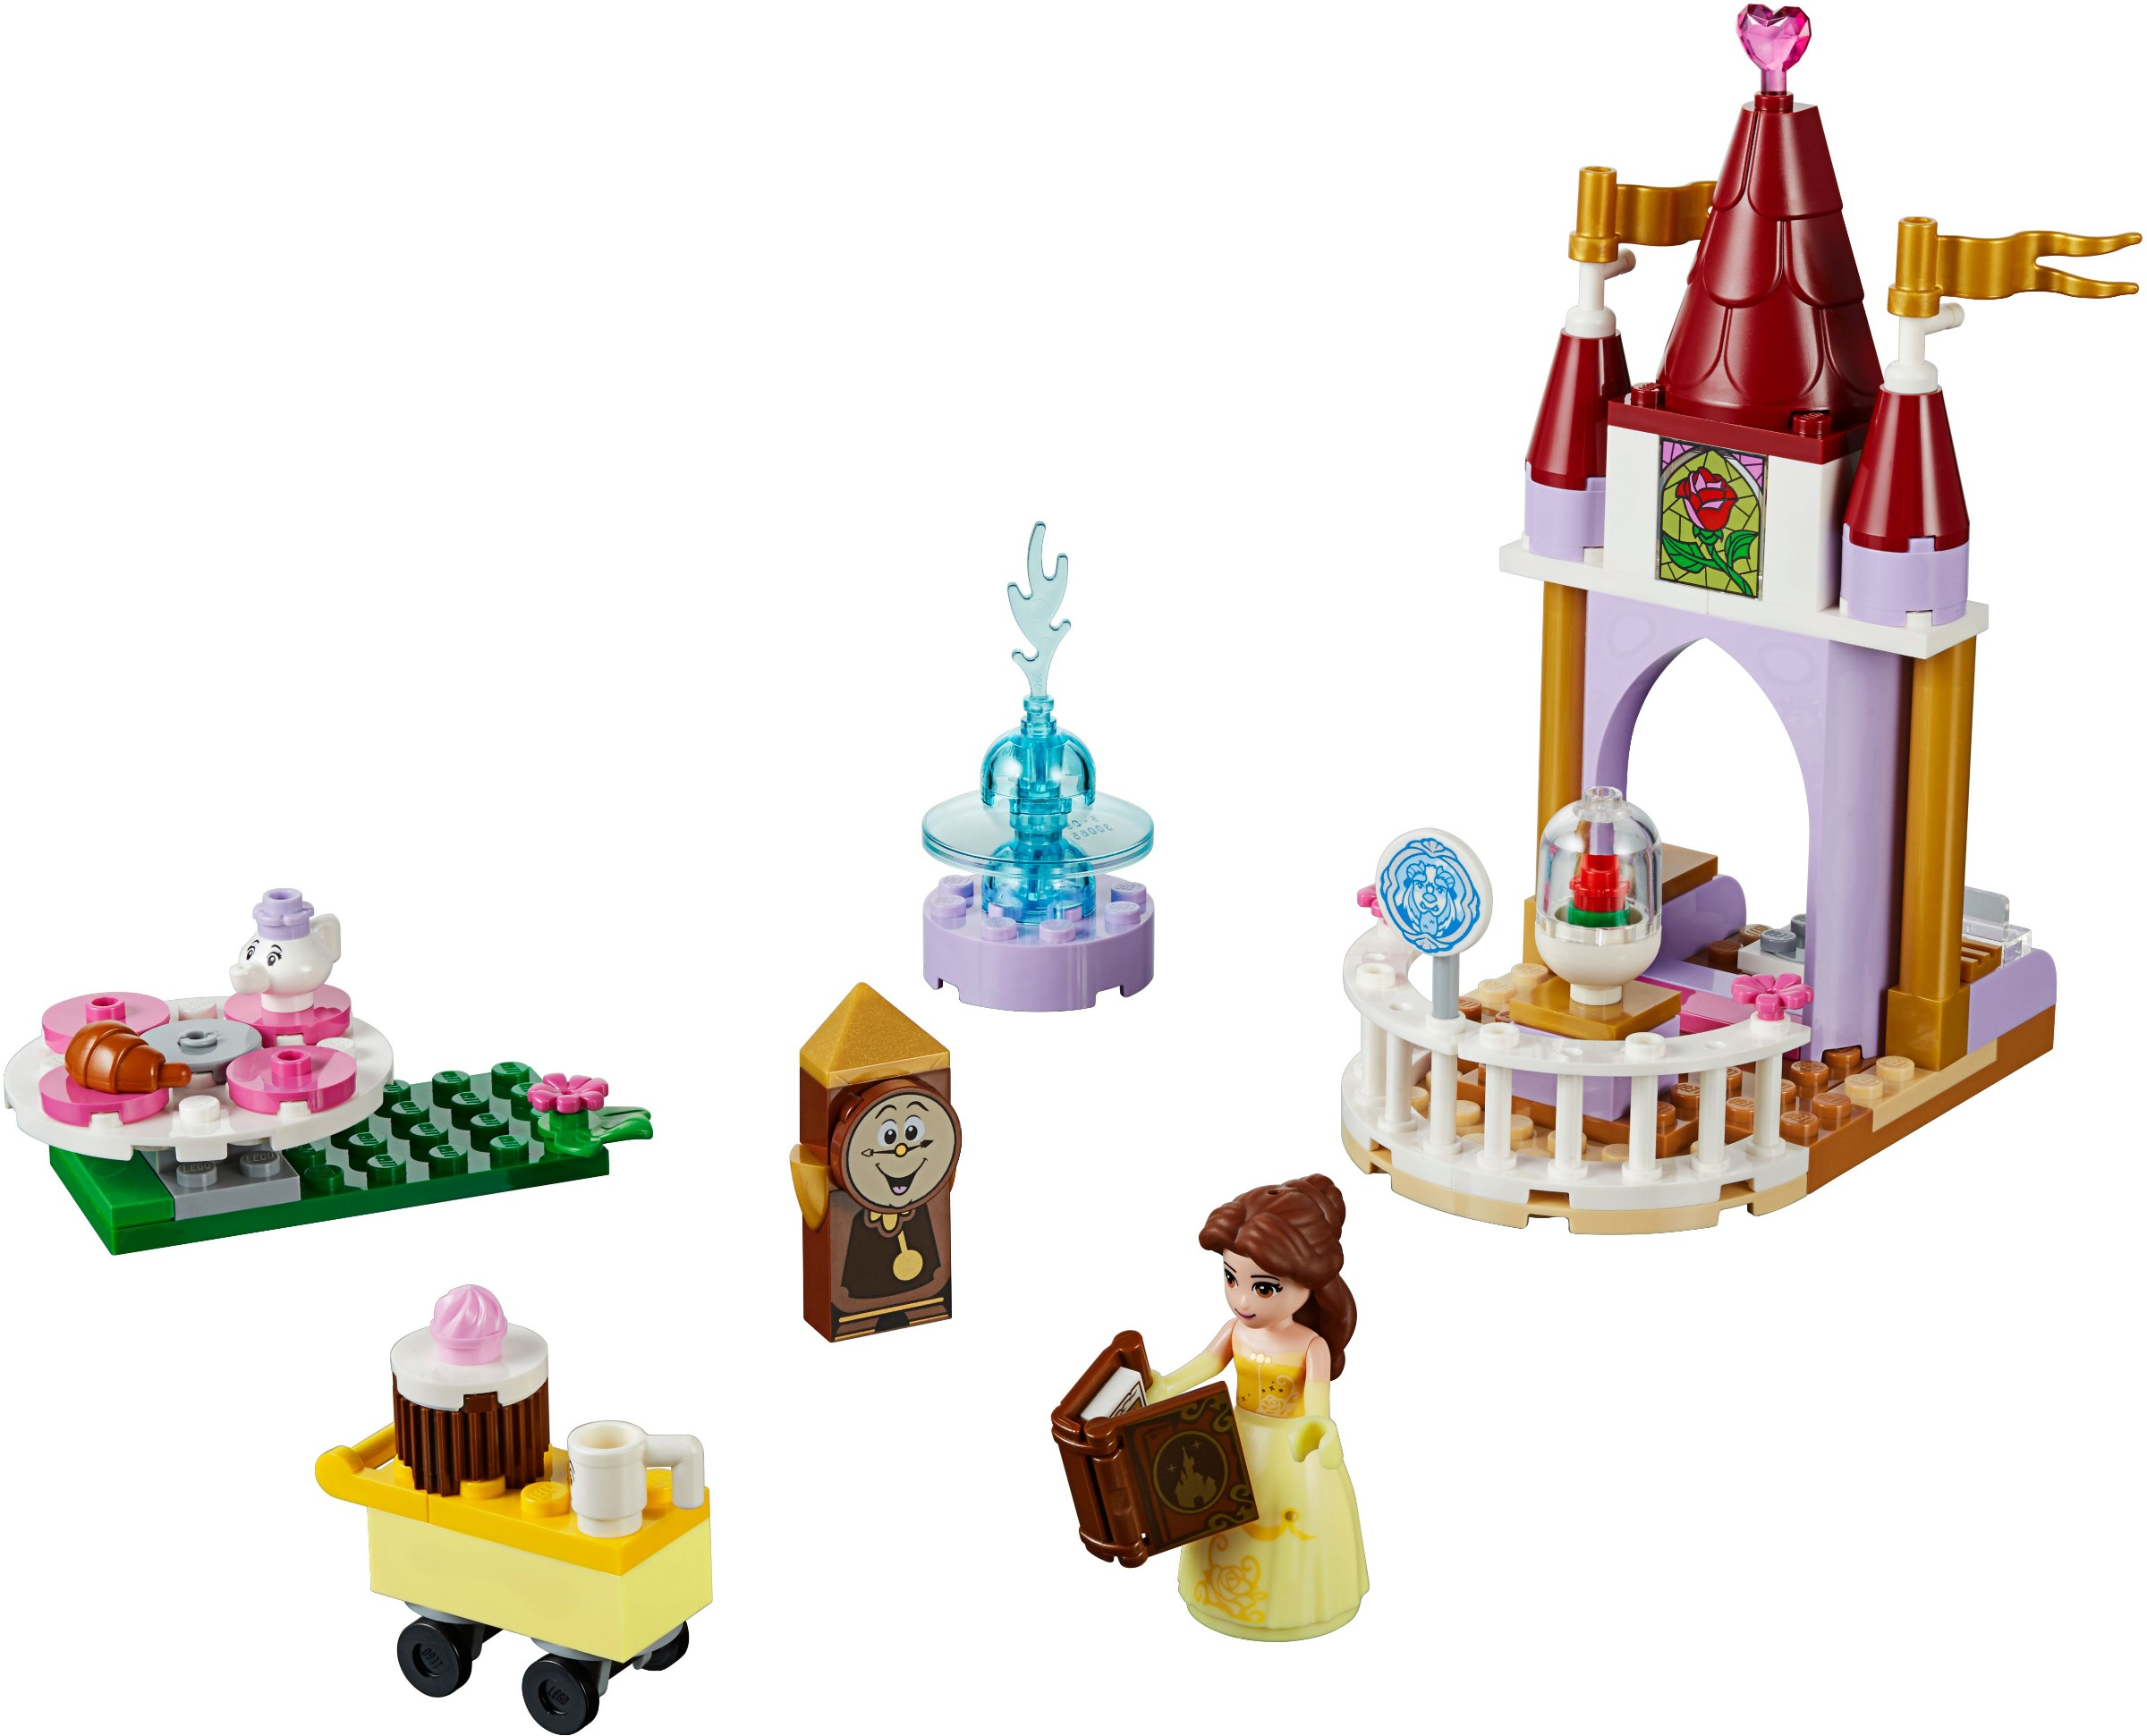 beauty and the beast lego set instructions